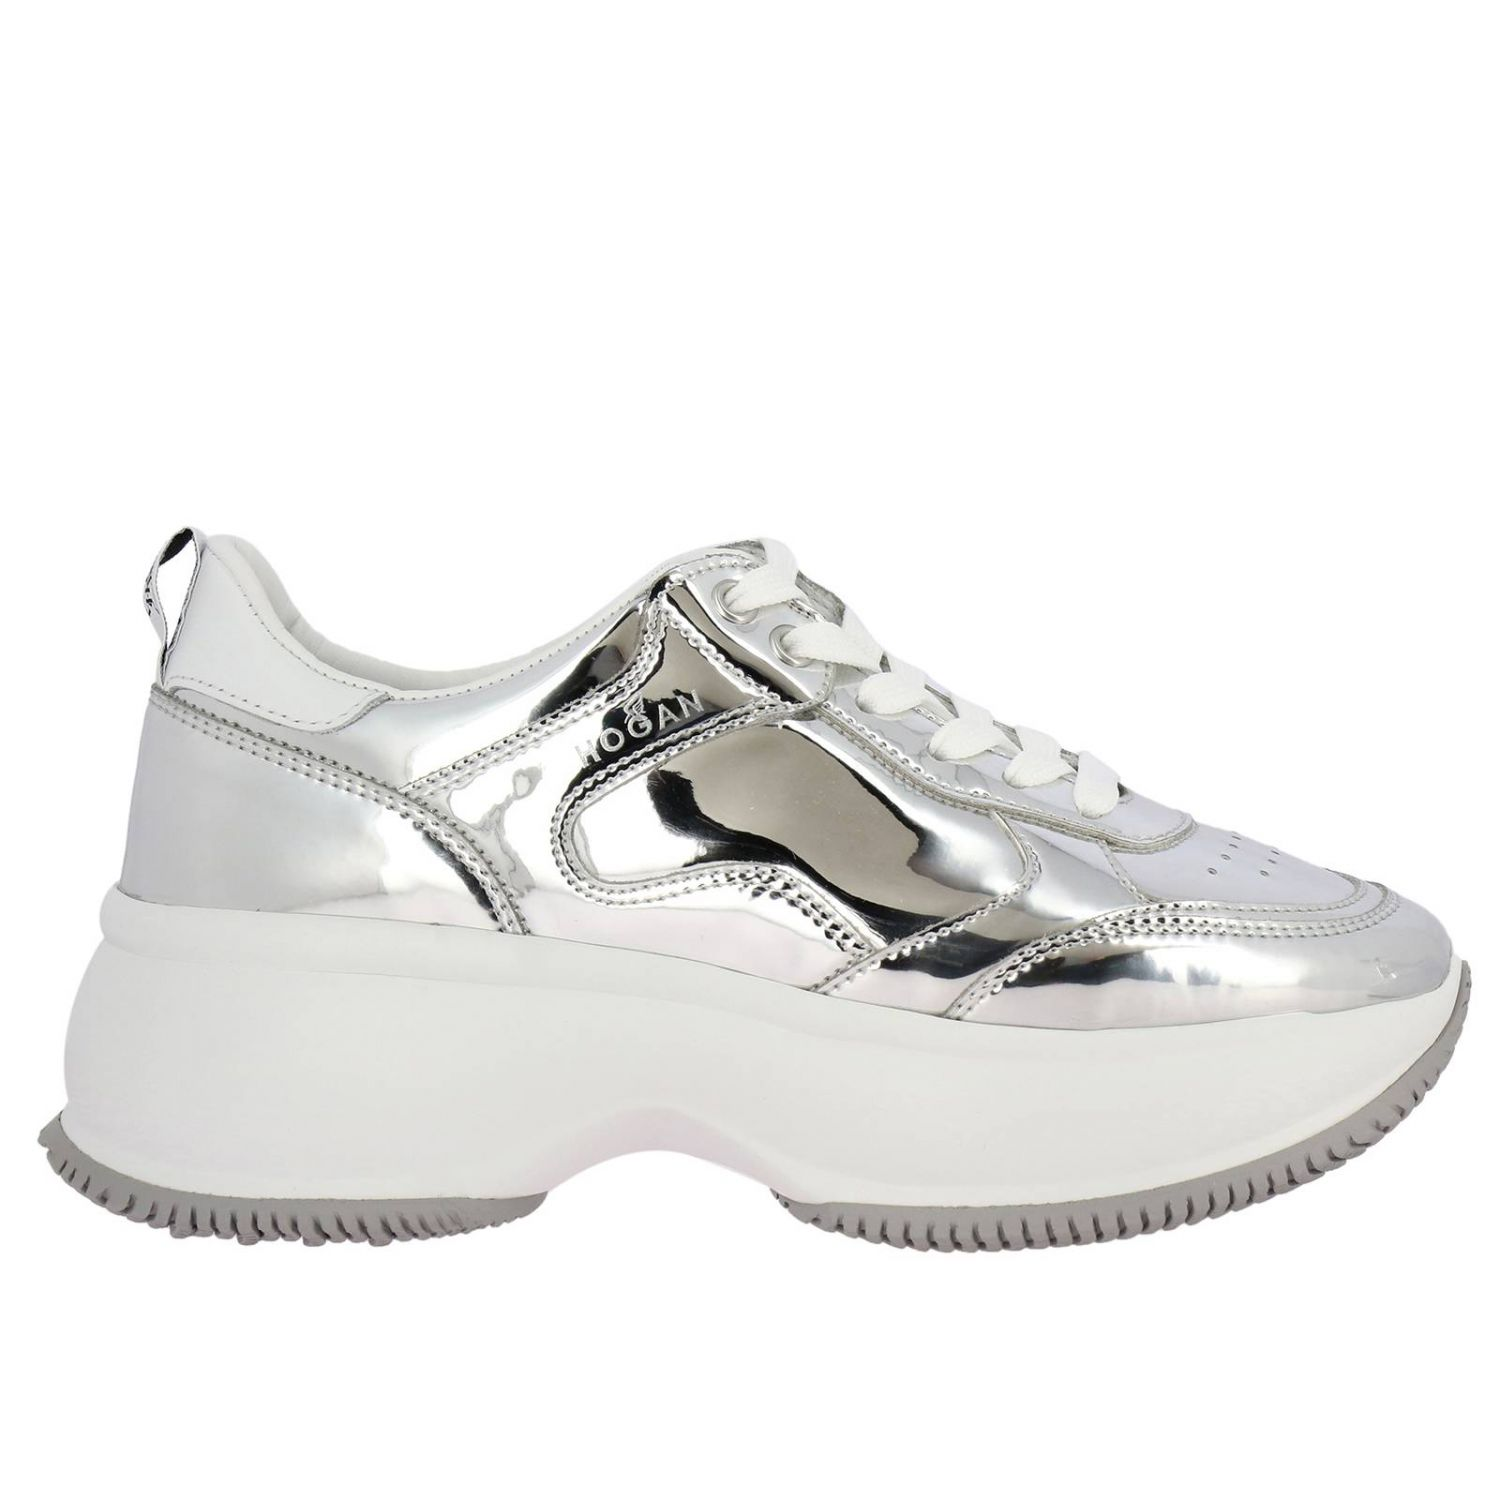 Sneakers Hogan: Active one Maxi Hogan mirrored leather sneakers and smooth leather silver 1